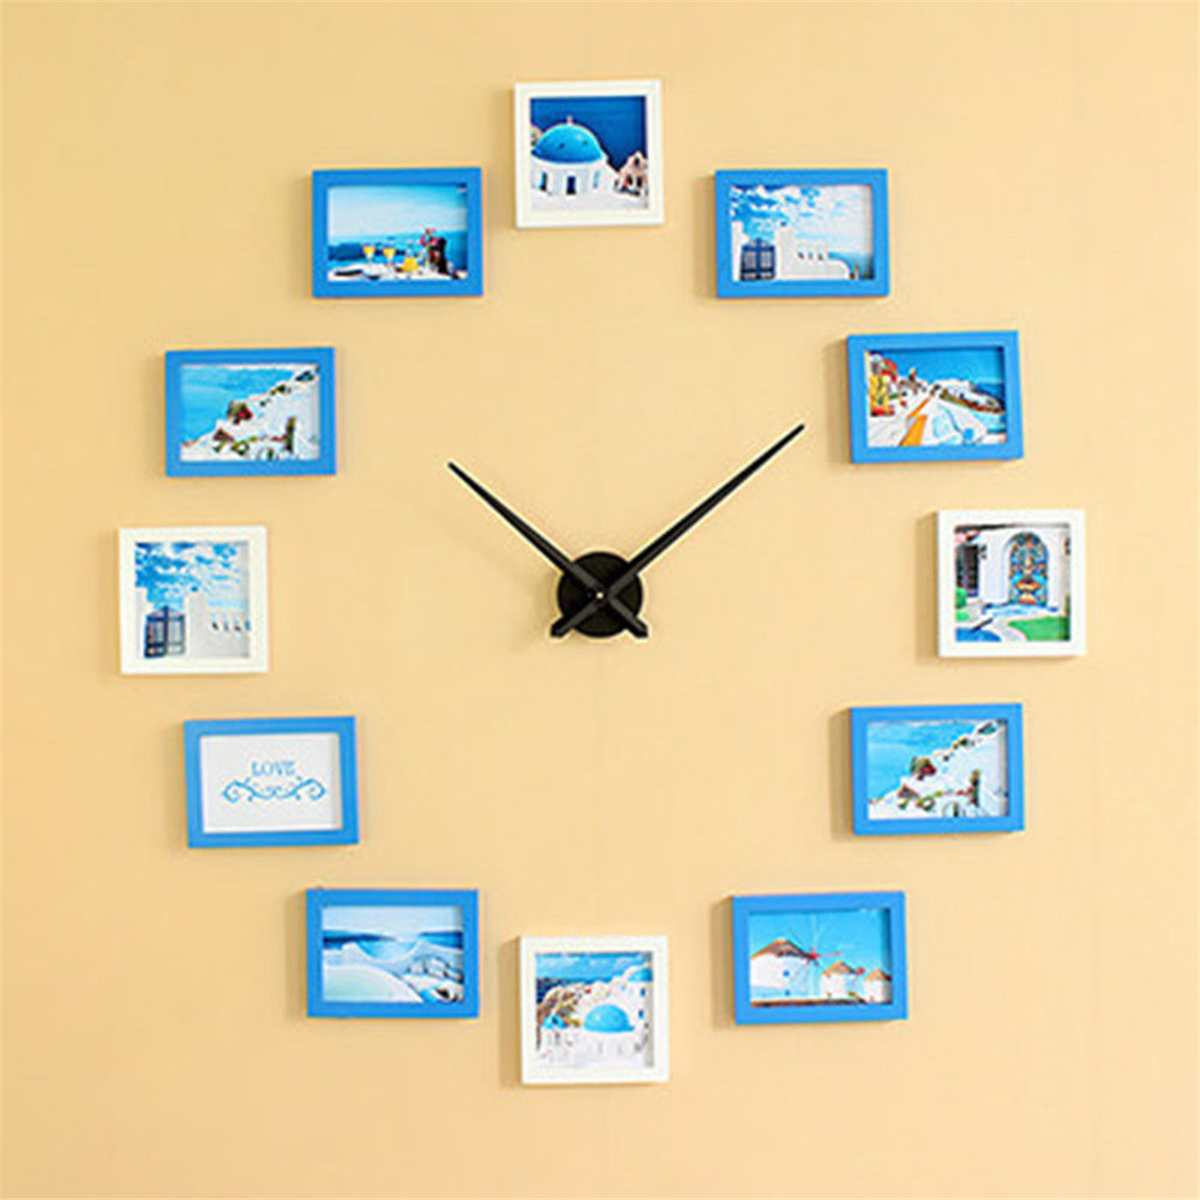 2019 12 Photo Frames Nordic Style DIY Wall Clock Modern Design Wood Photo Frame Clock Art Pictures Clock Unique Klok Home Decor